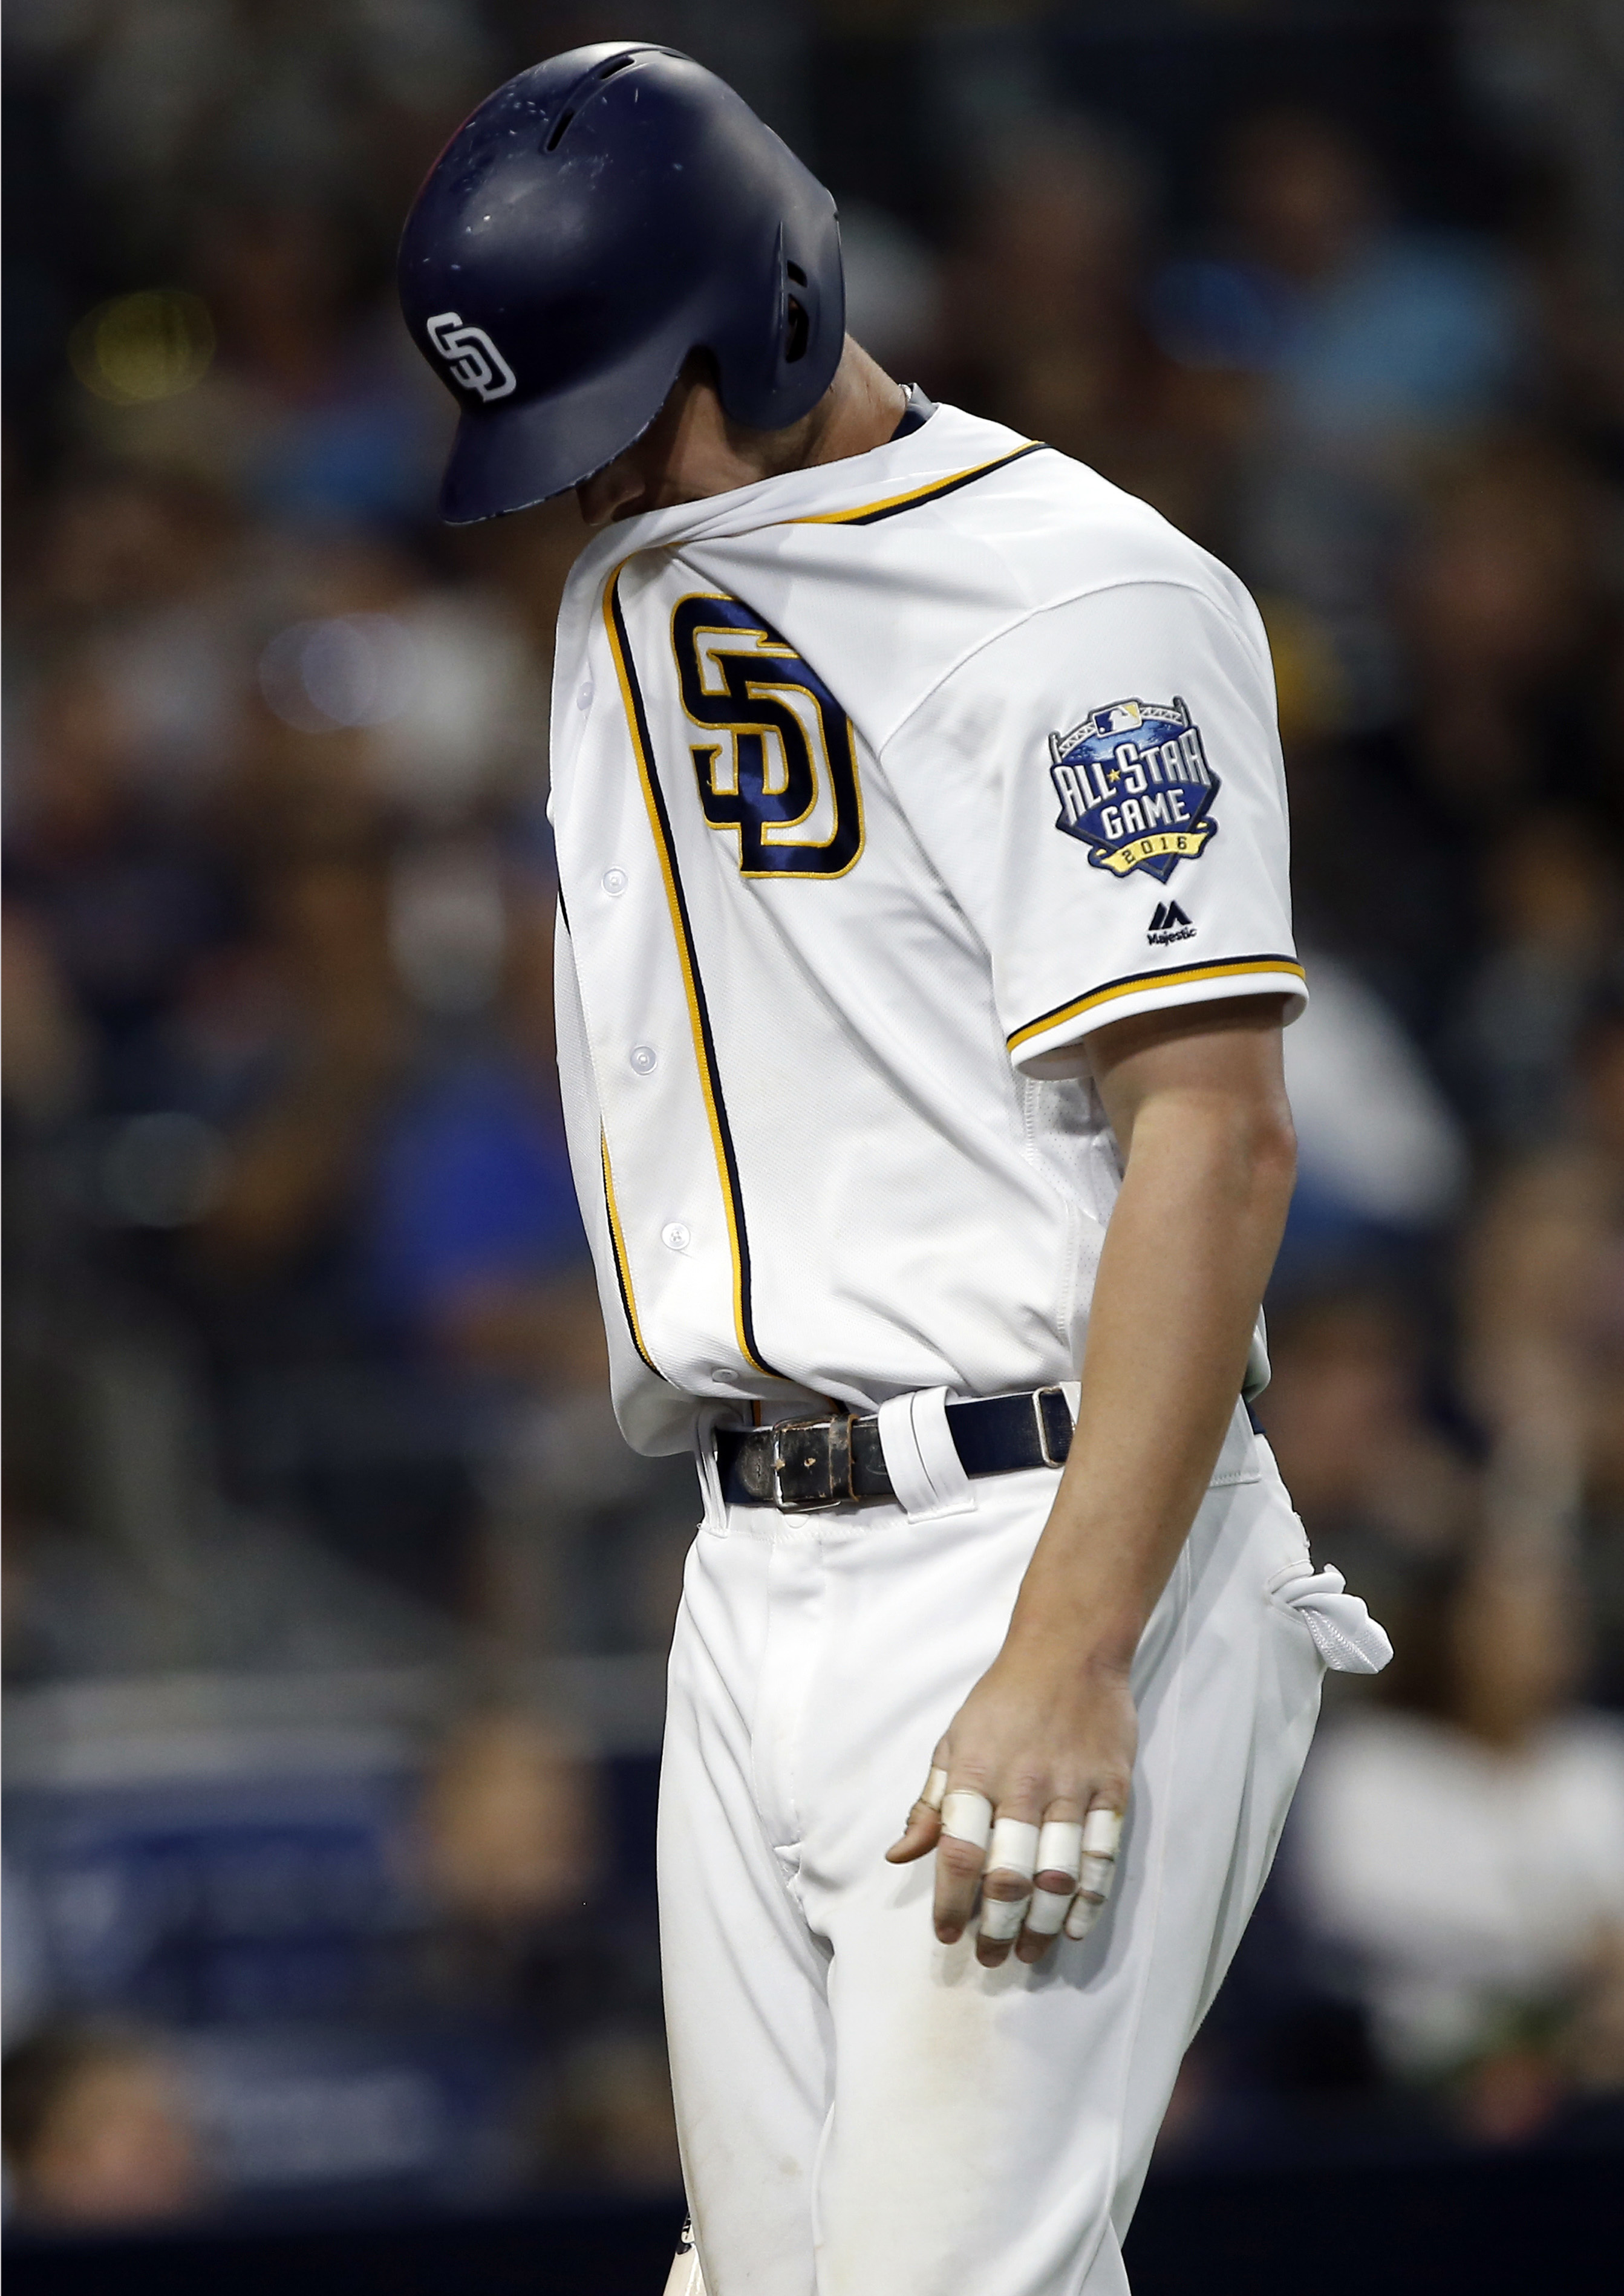 San Diego Padres' Wil Myers walks back to the dugout after striking out during the eighth inning of a baseball game Cincinnati Reds in San Diego, Saturday, July 30, 2016. (AP Photo/Alex Gallardo)